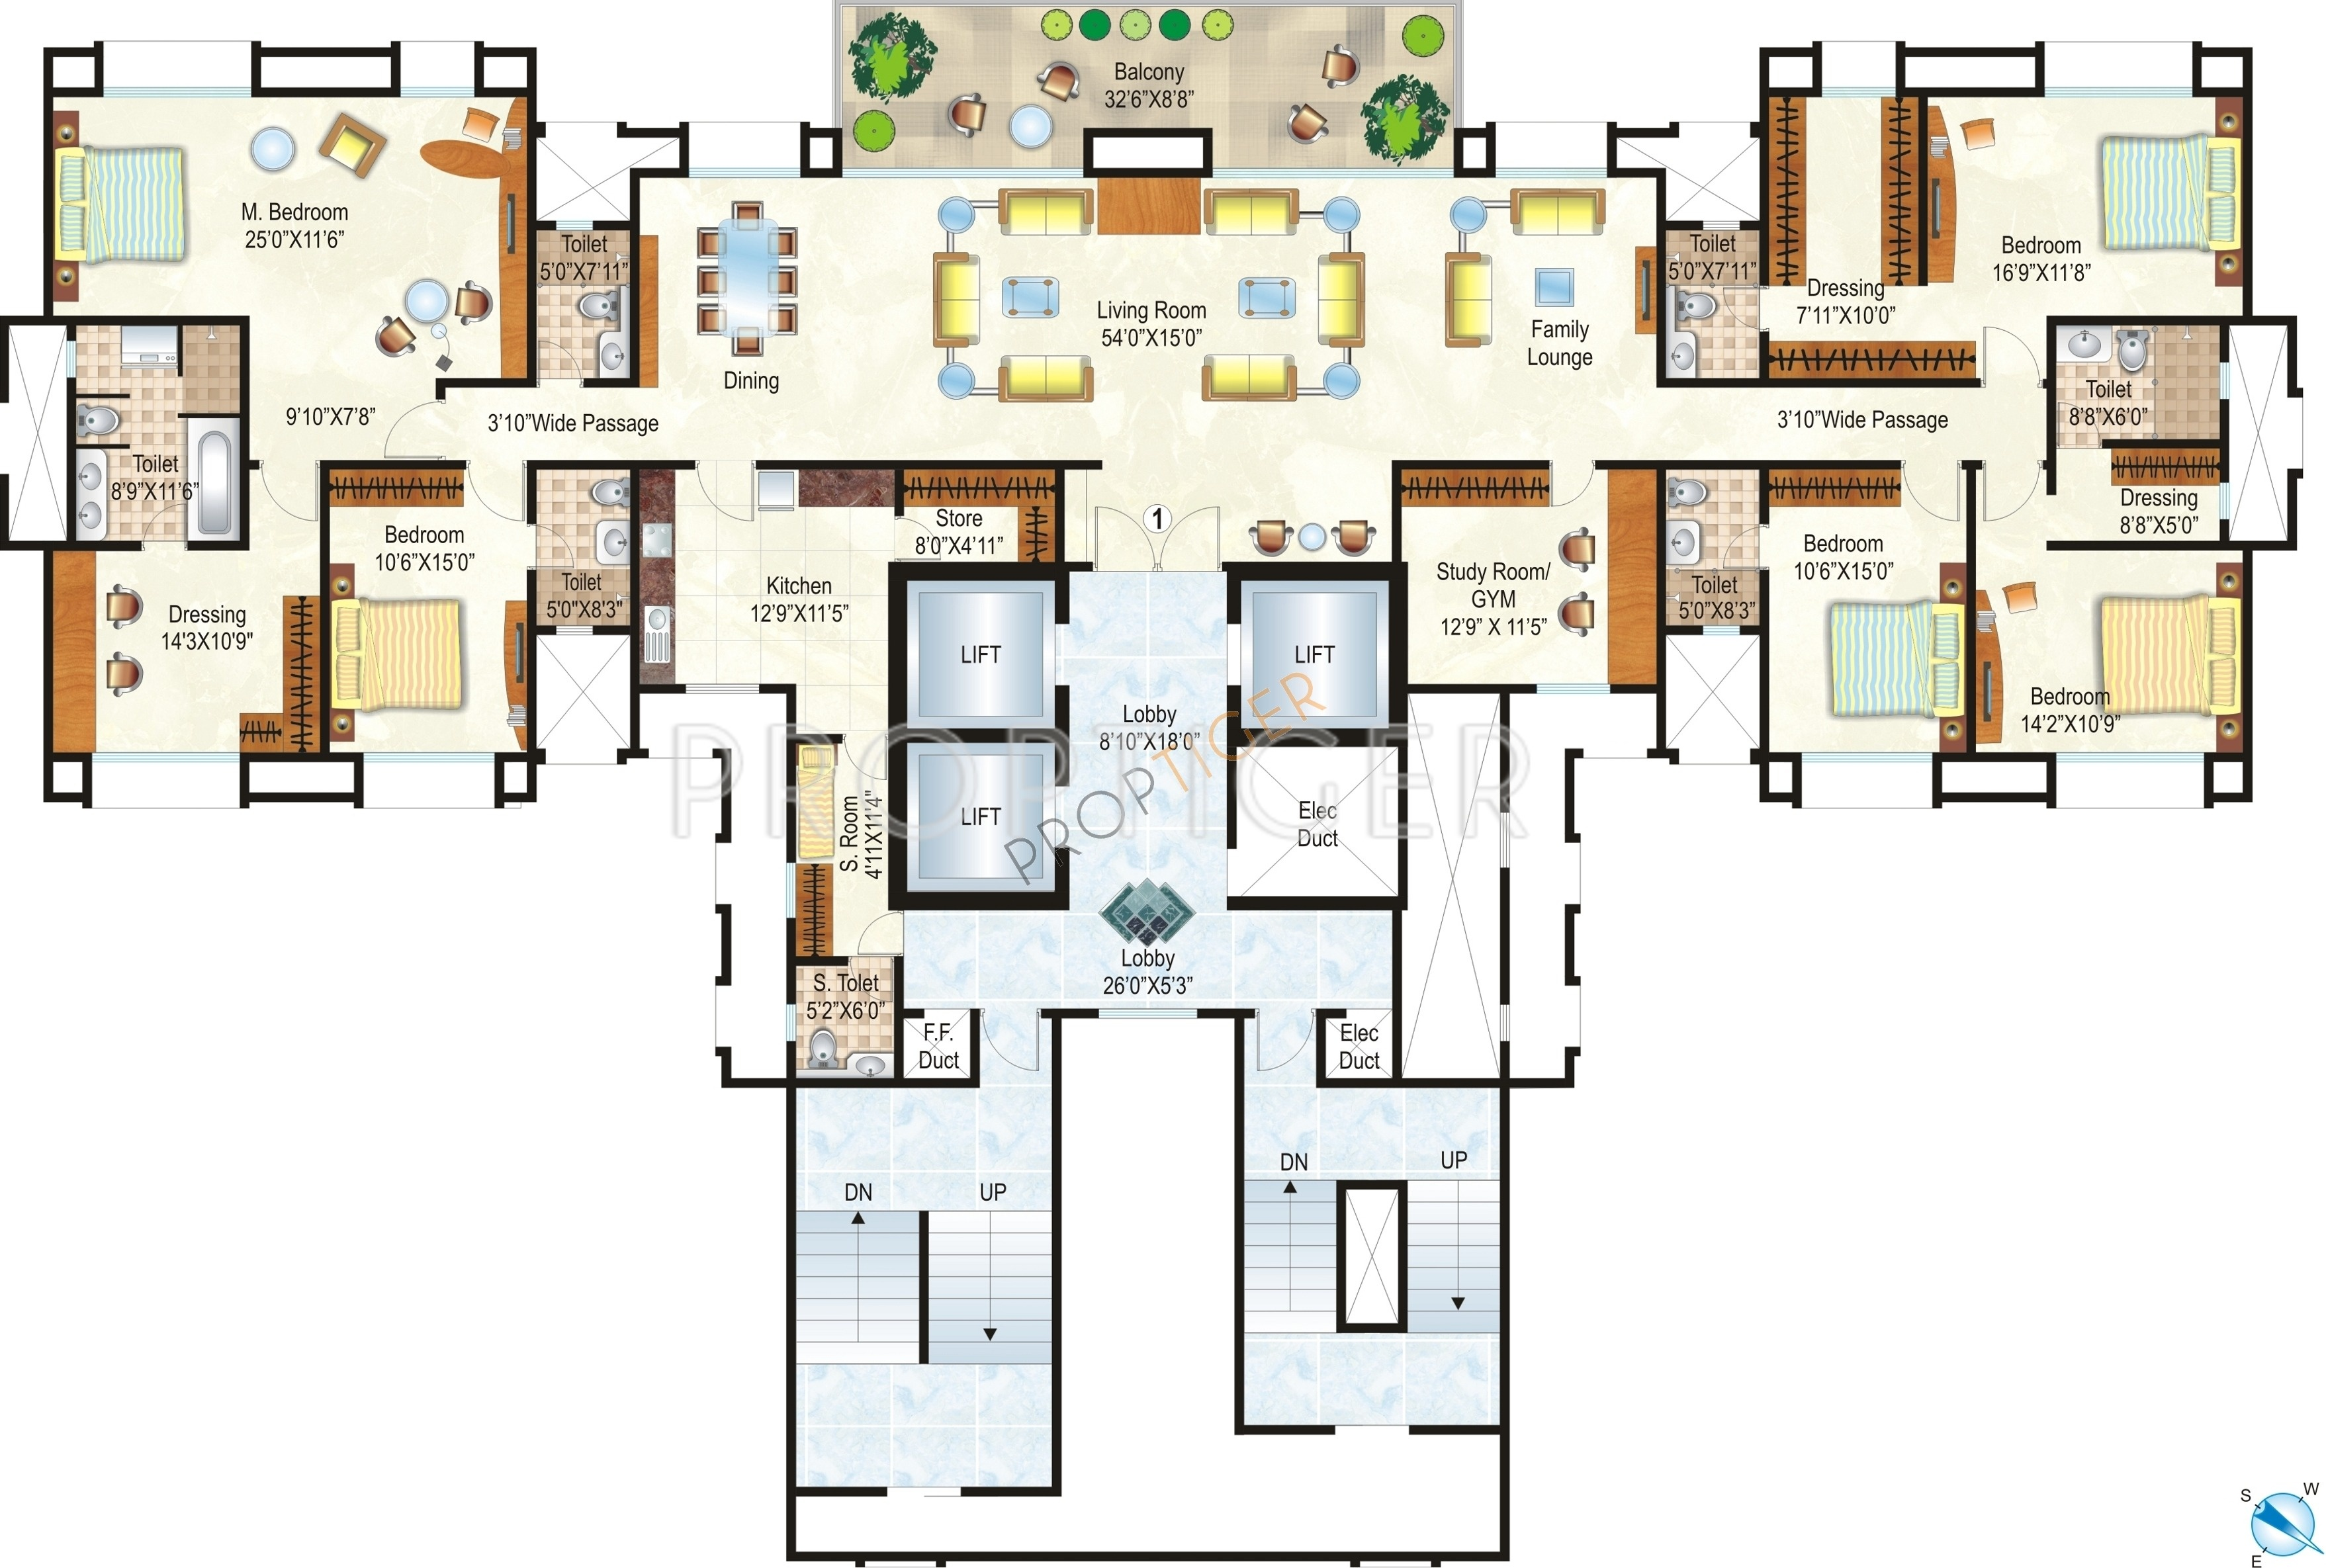 5000 square foot house plan house plan 2017 for House plans over 5000 sq ft